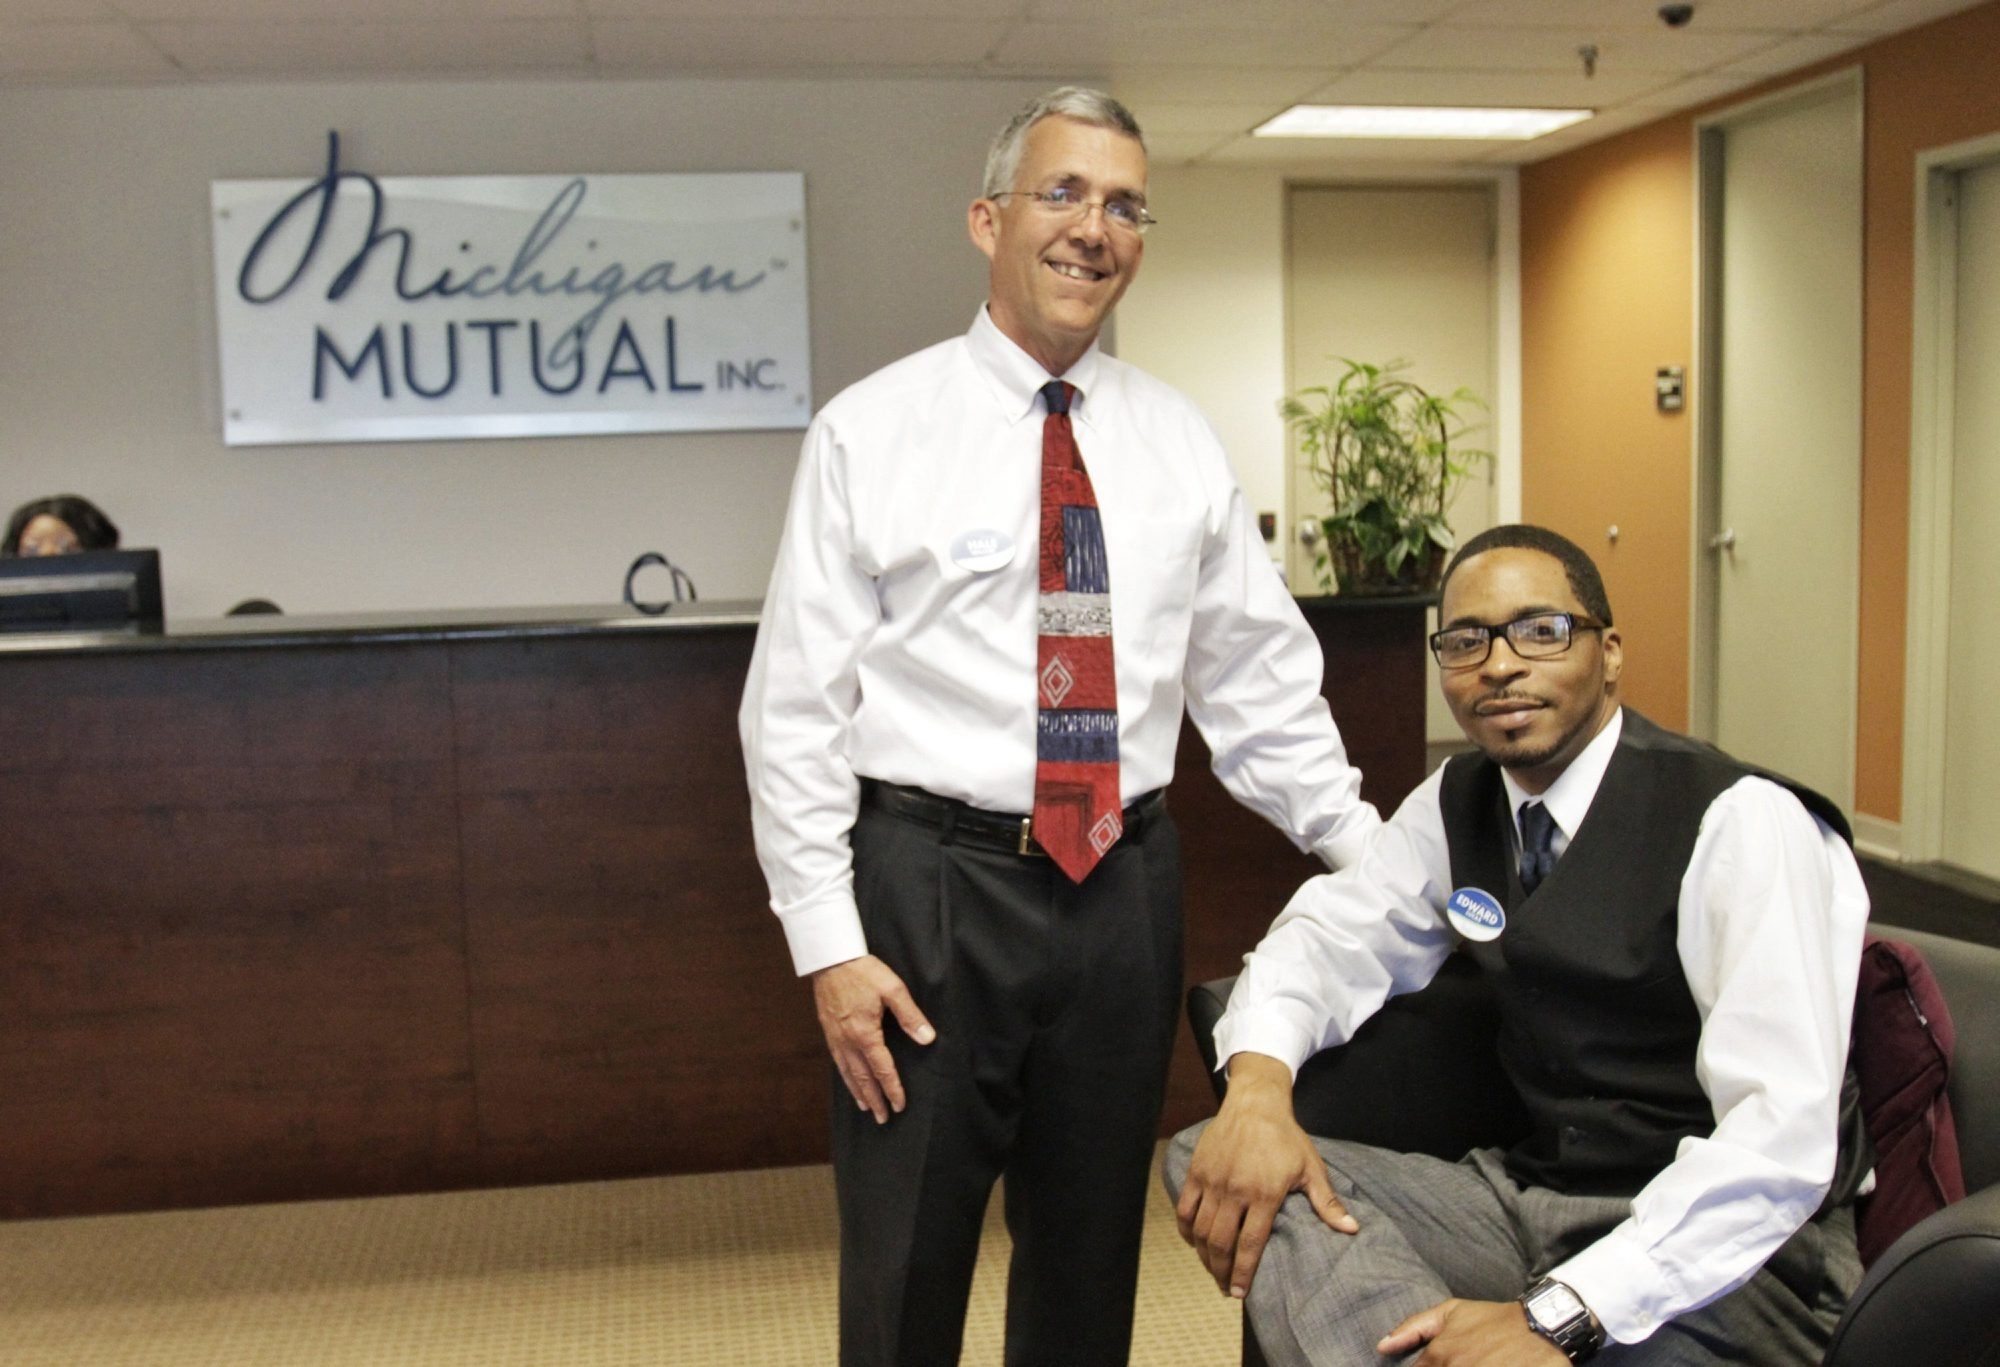 Ed Lucas, right, left his job as a junior underwriter at JPMorgan Chase to become an assistant underwriter at Michigan Mutual. At left is co-founder Hale Walker.